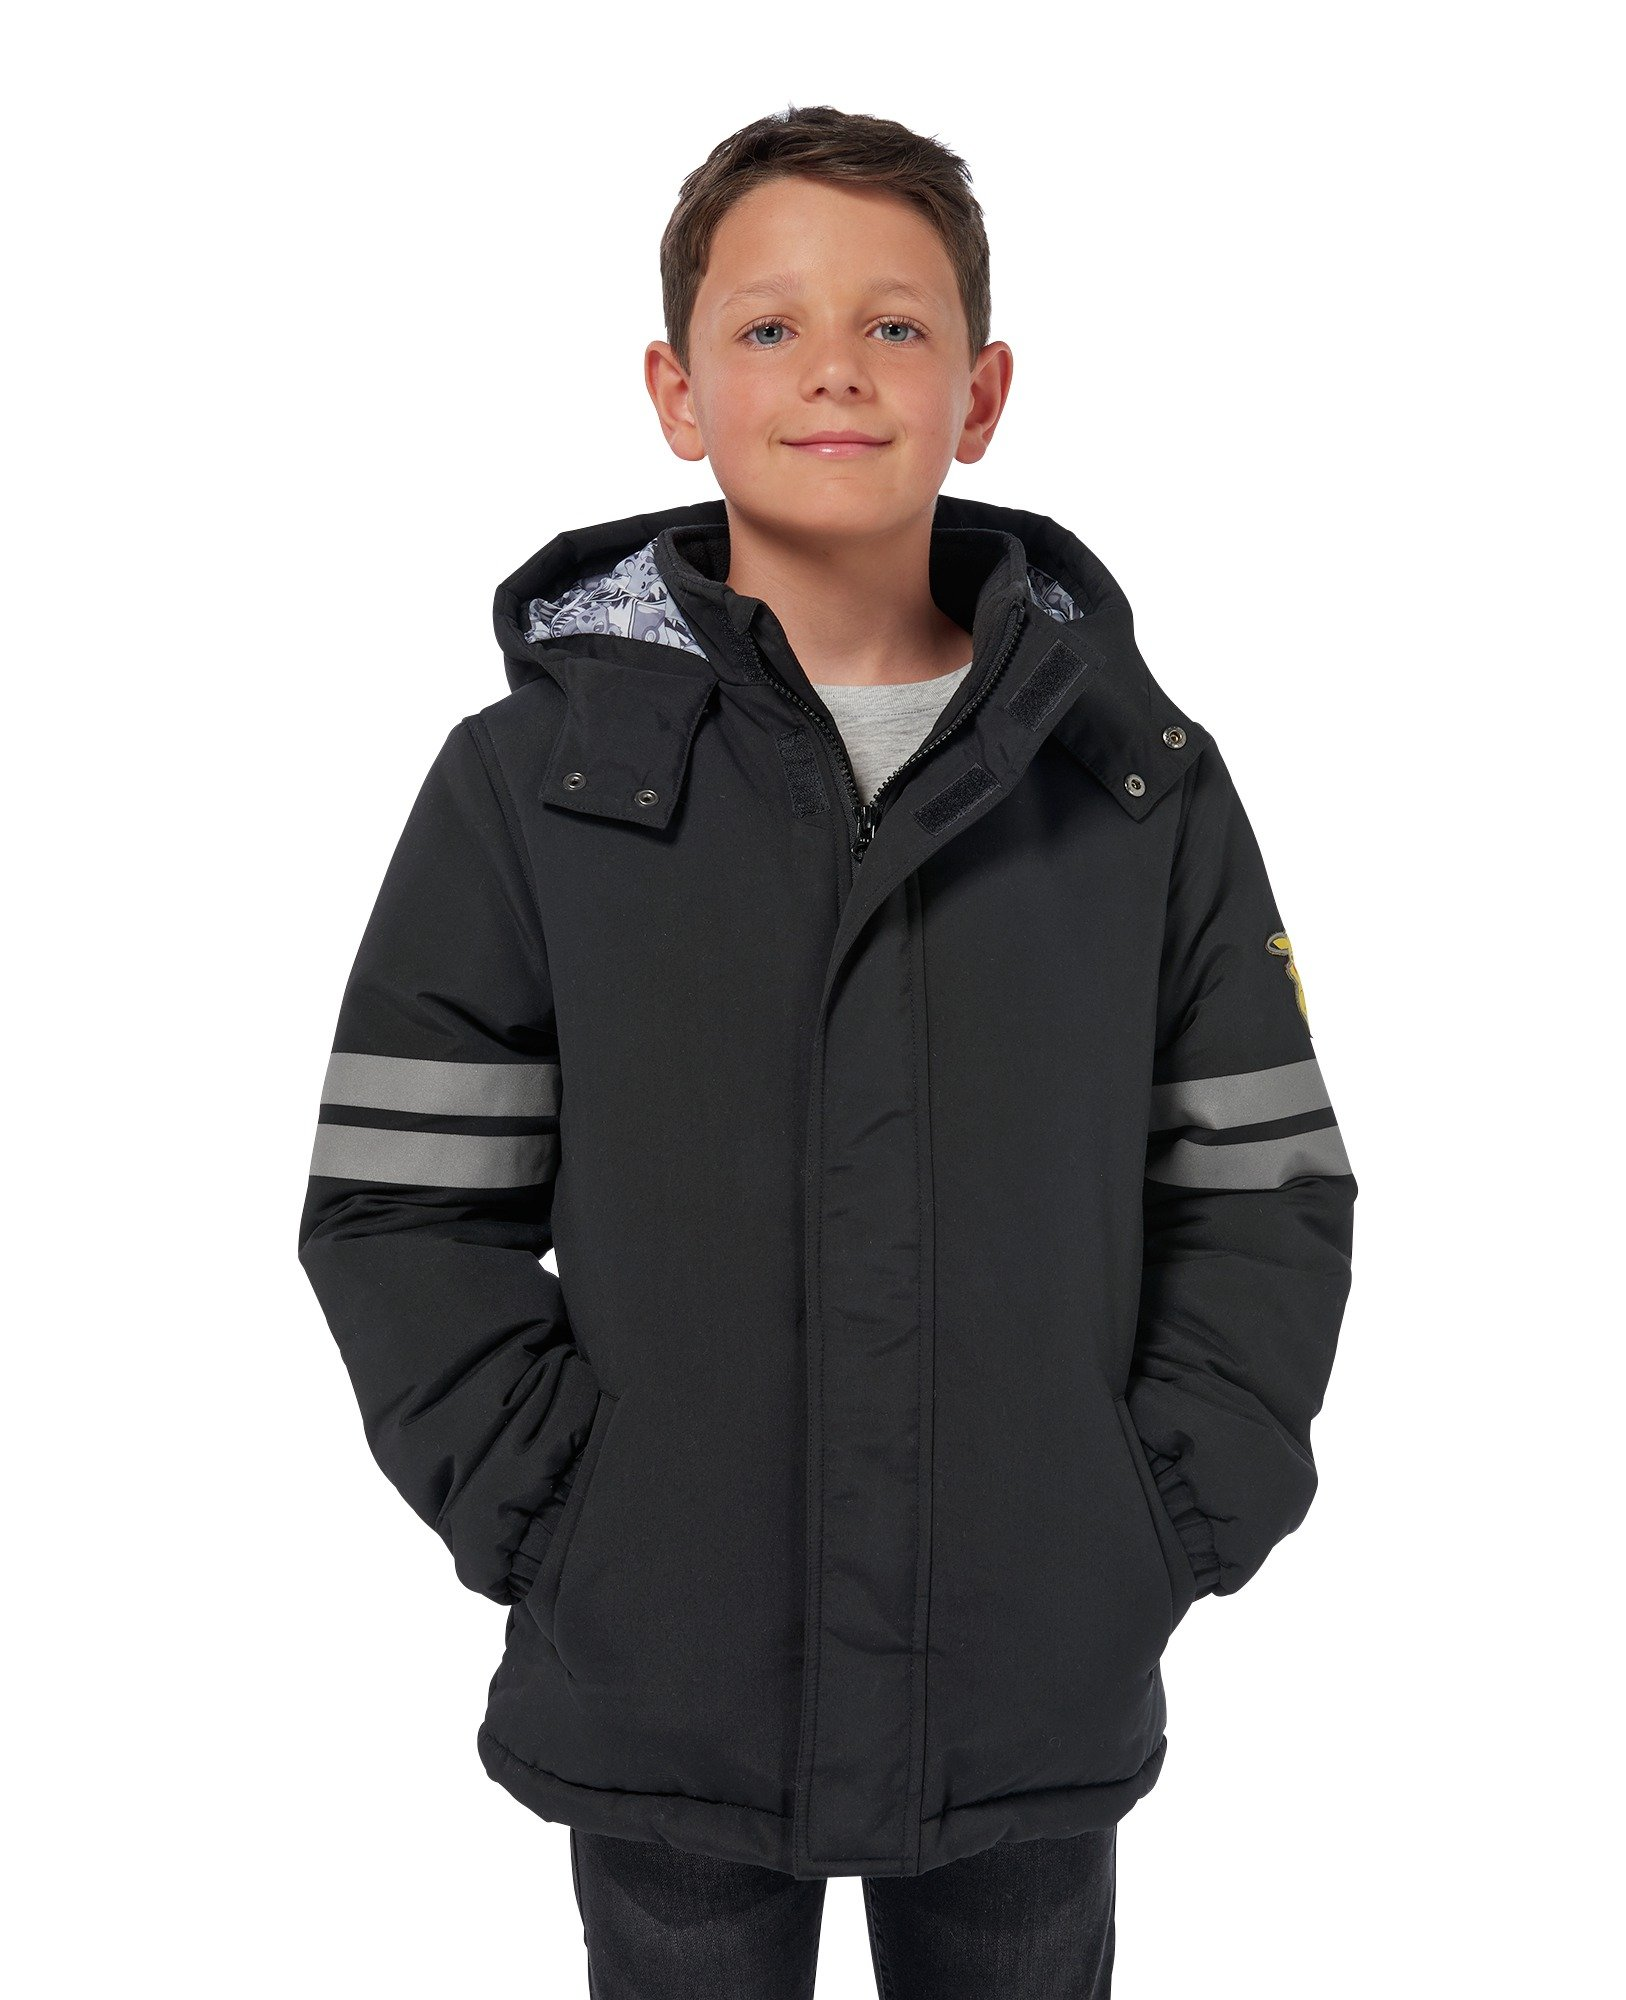 Pokemon Black Jacket - 5-6 Years